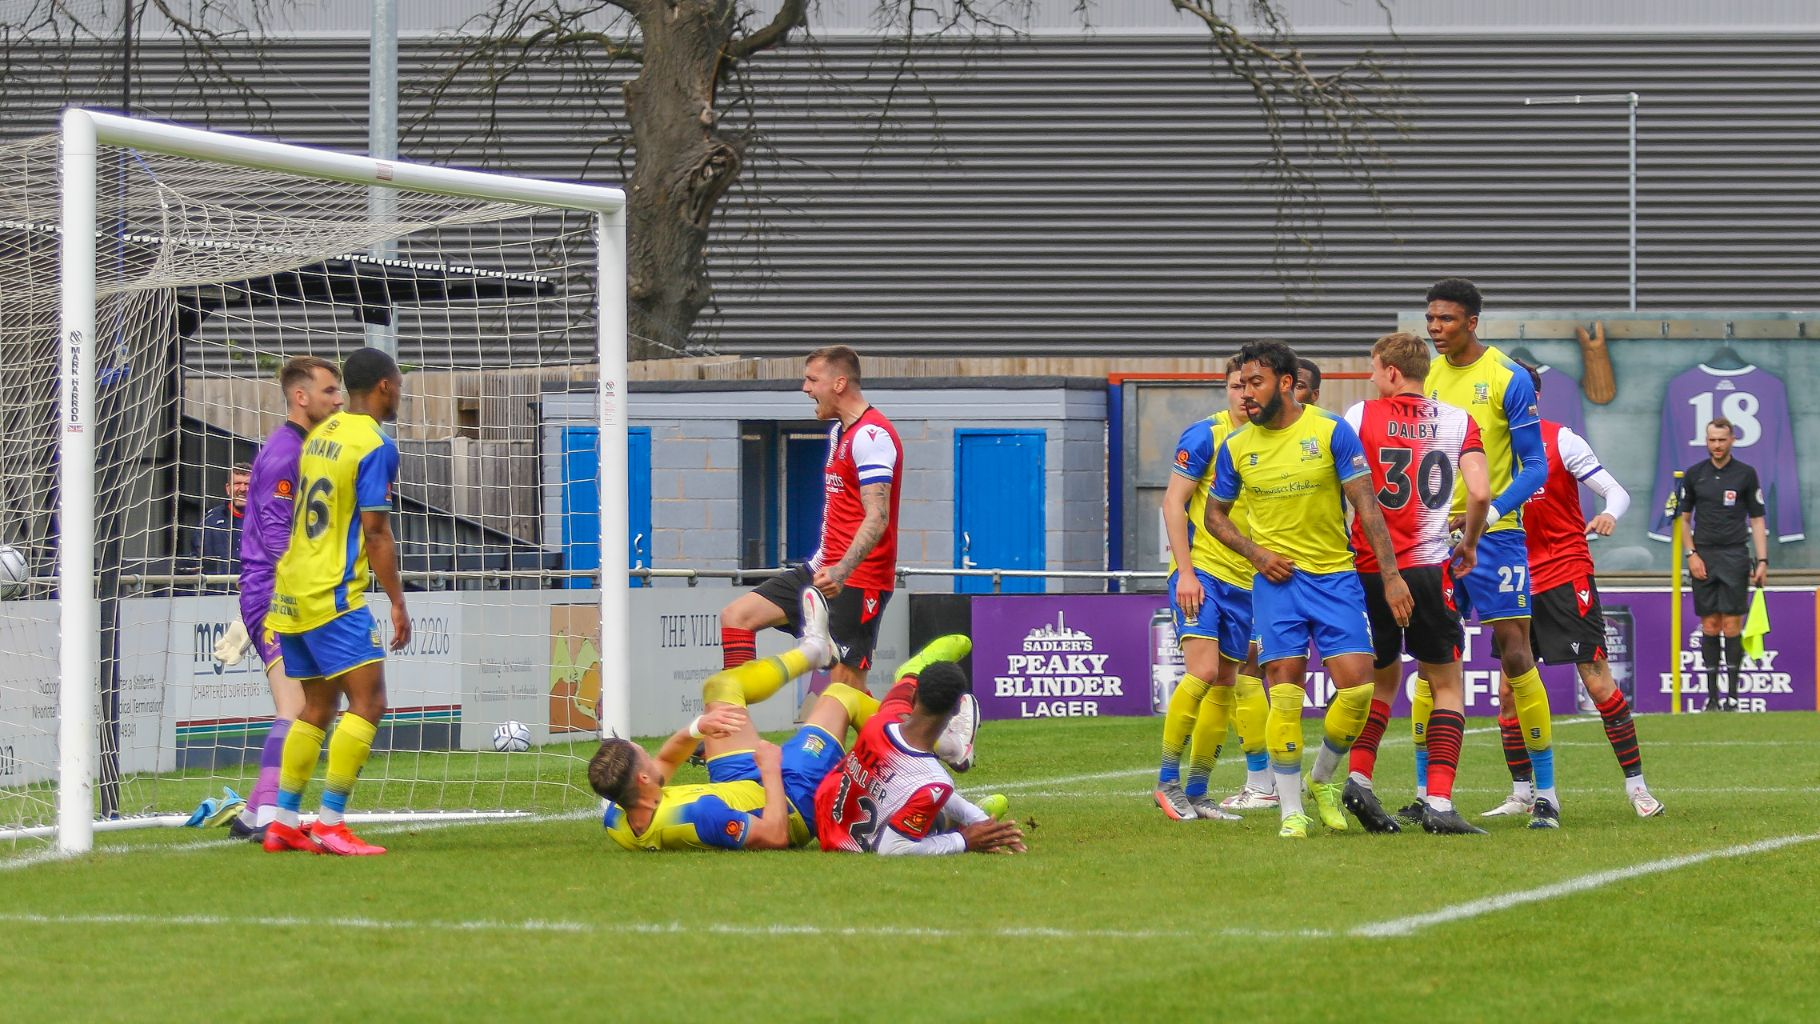 Collier opens his Woking account